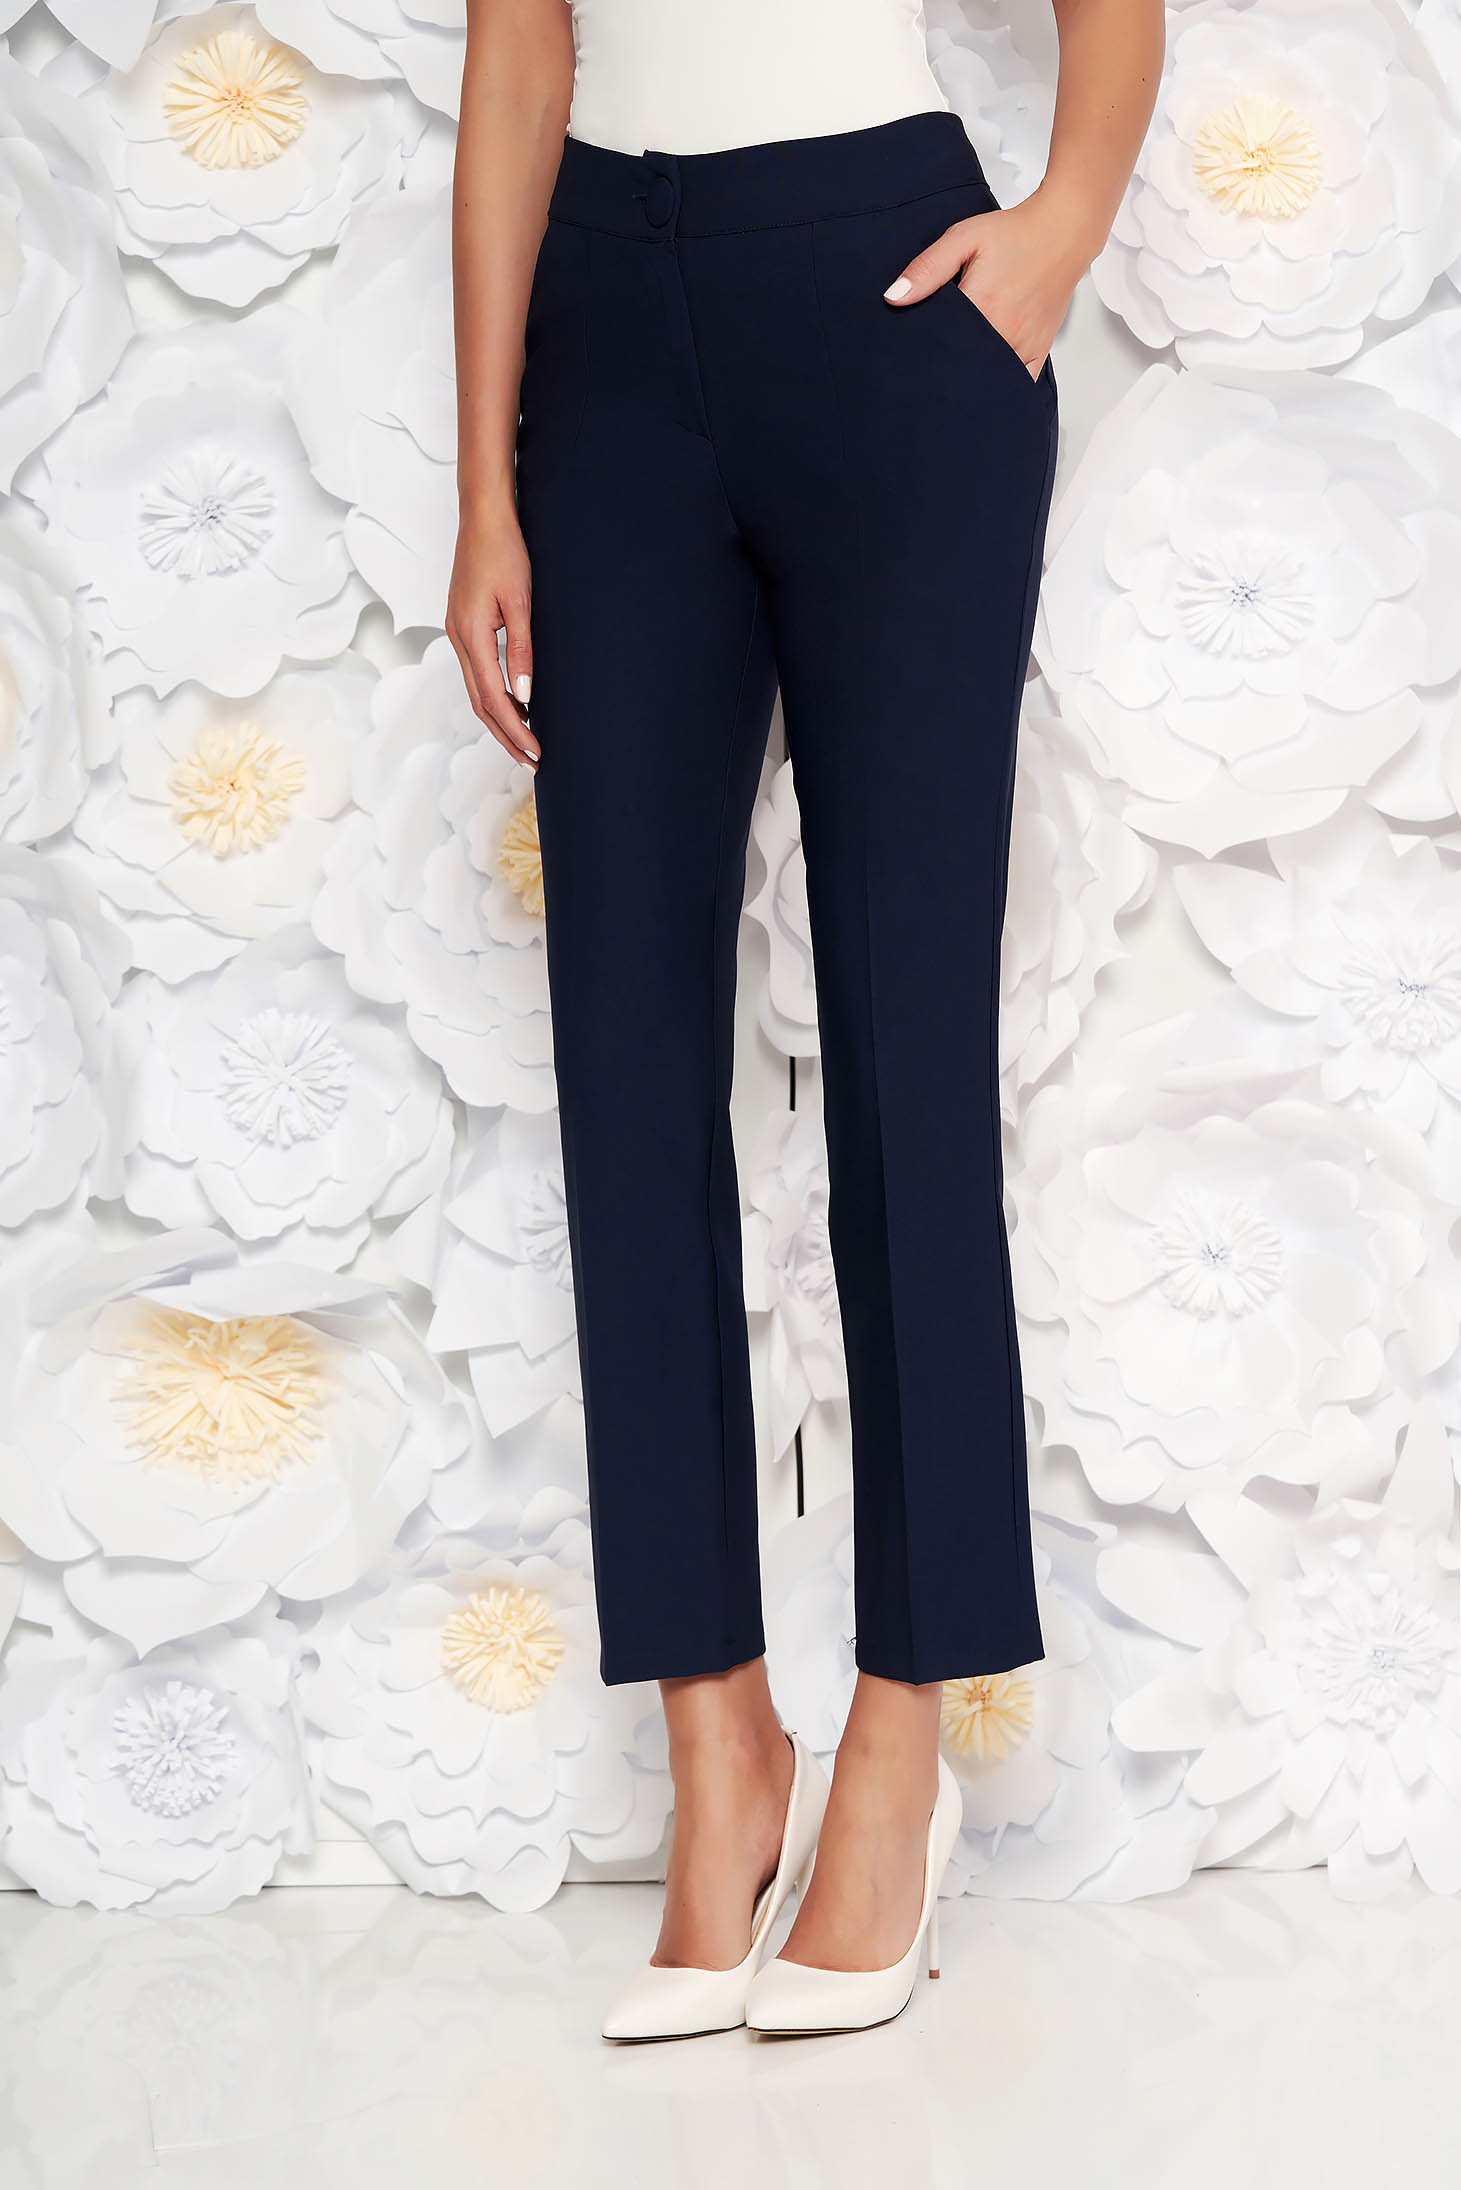 Artista darkblue office trousers with pockets with medium waist slightly elastic fabric with straight cut